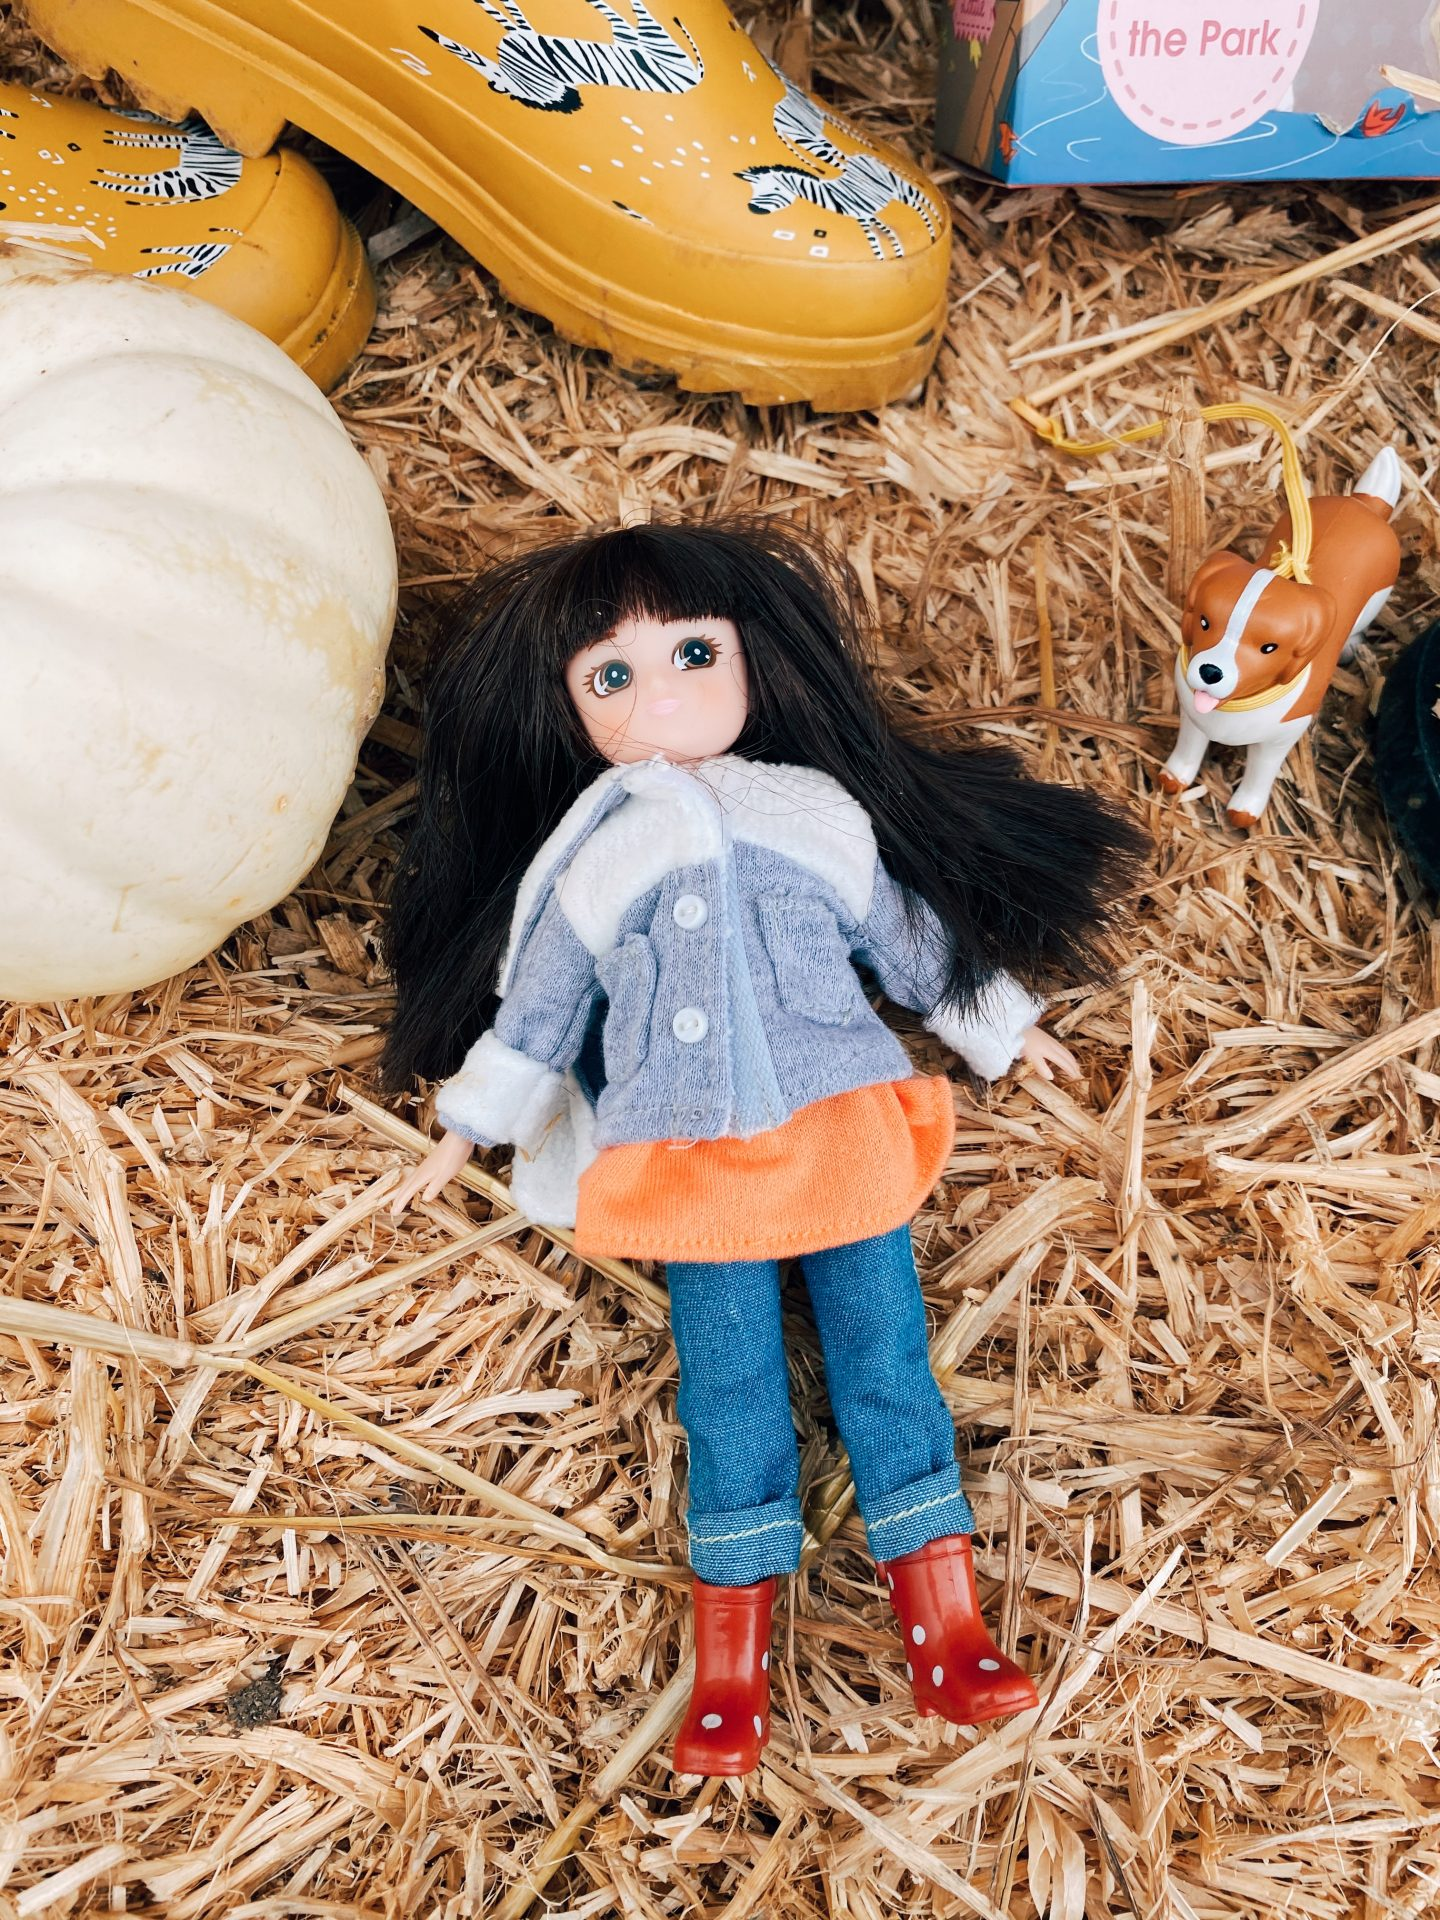 Lottie Doll – Walk in the Park